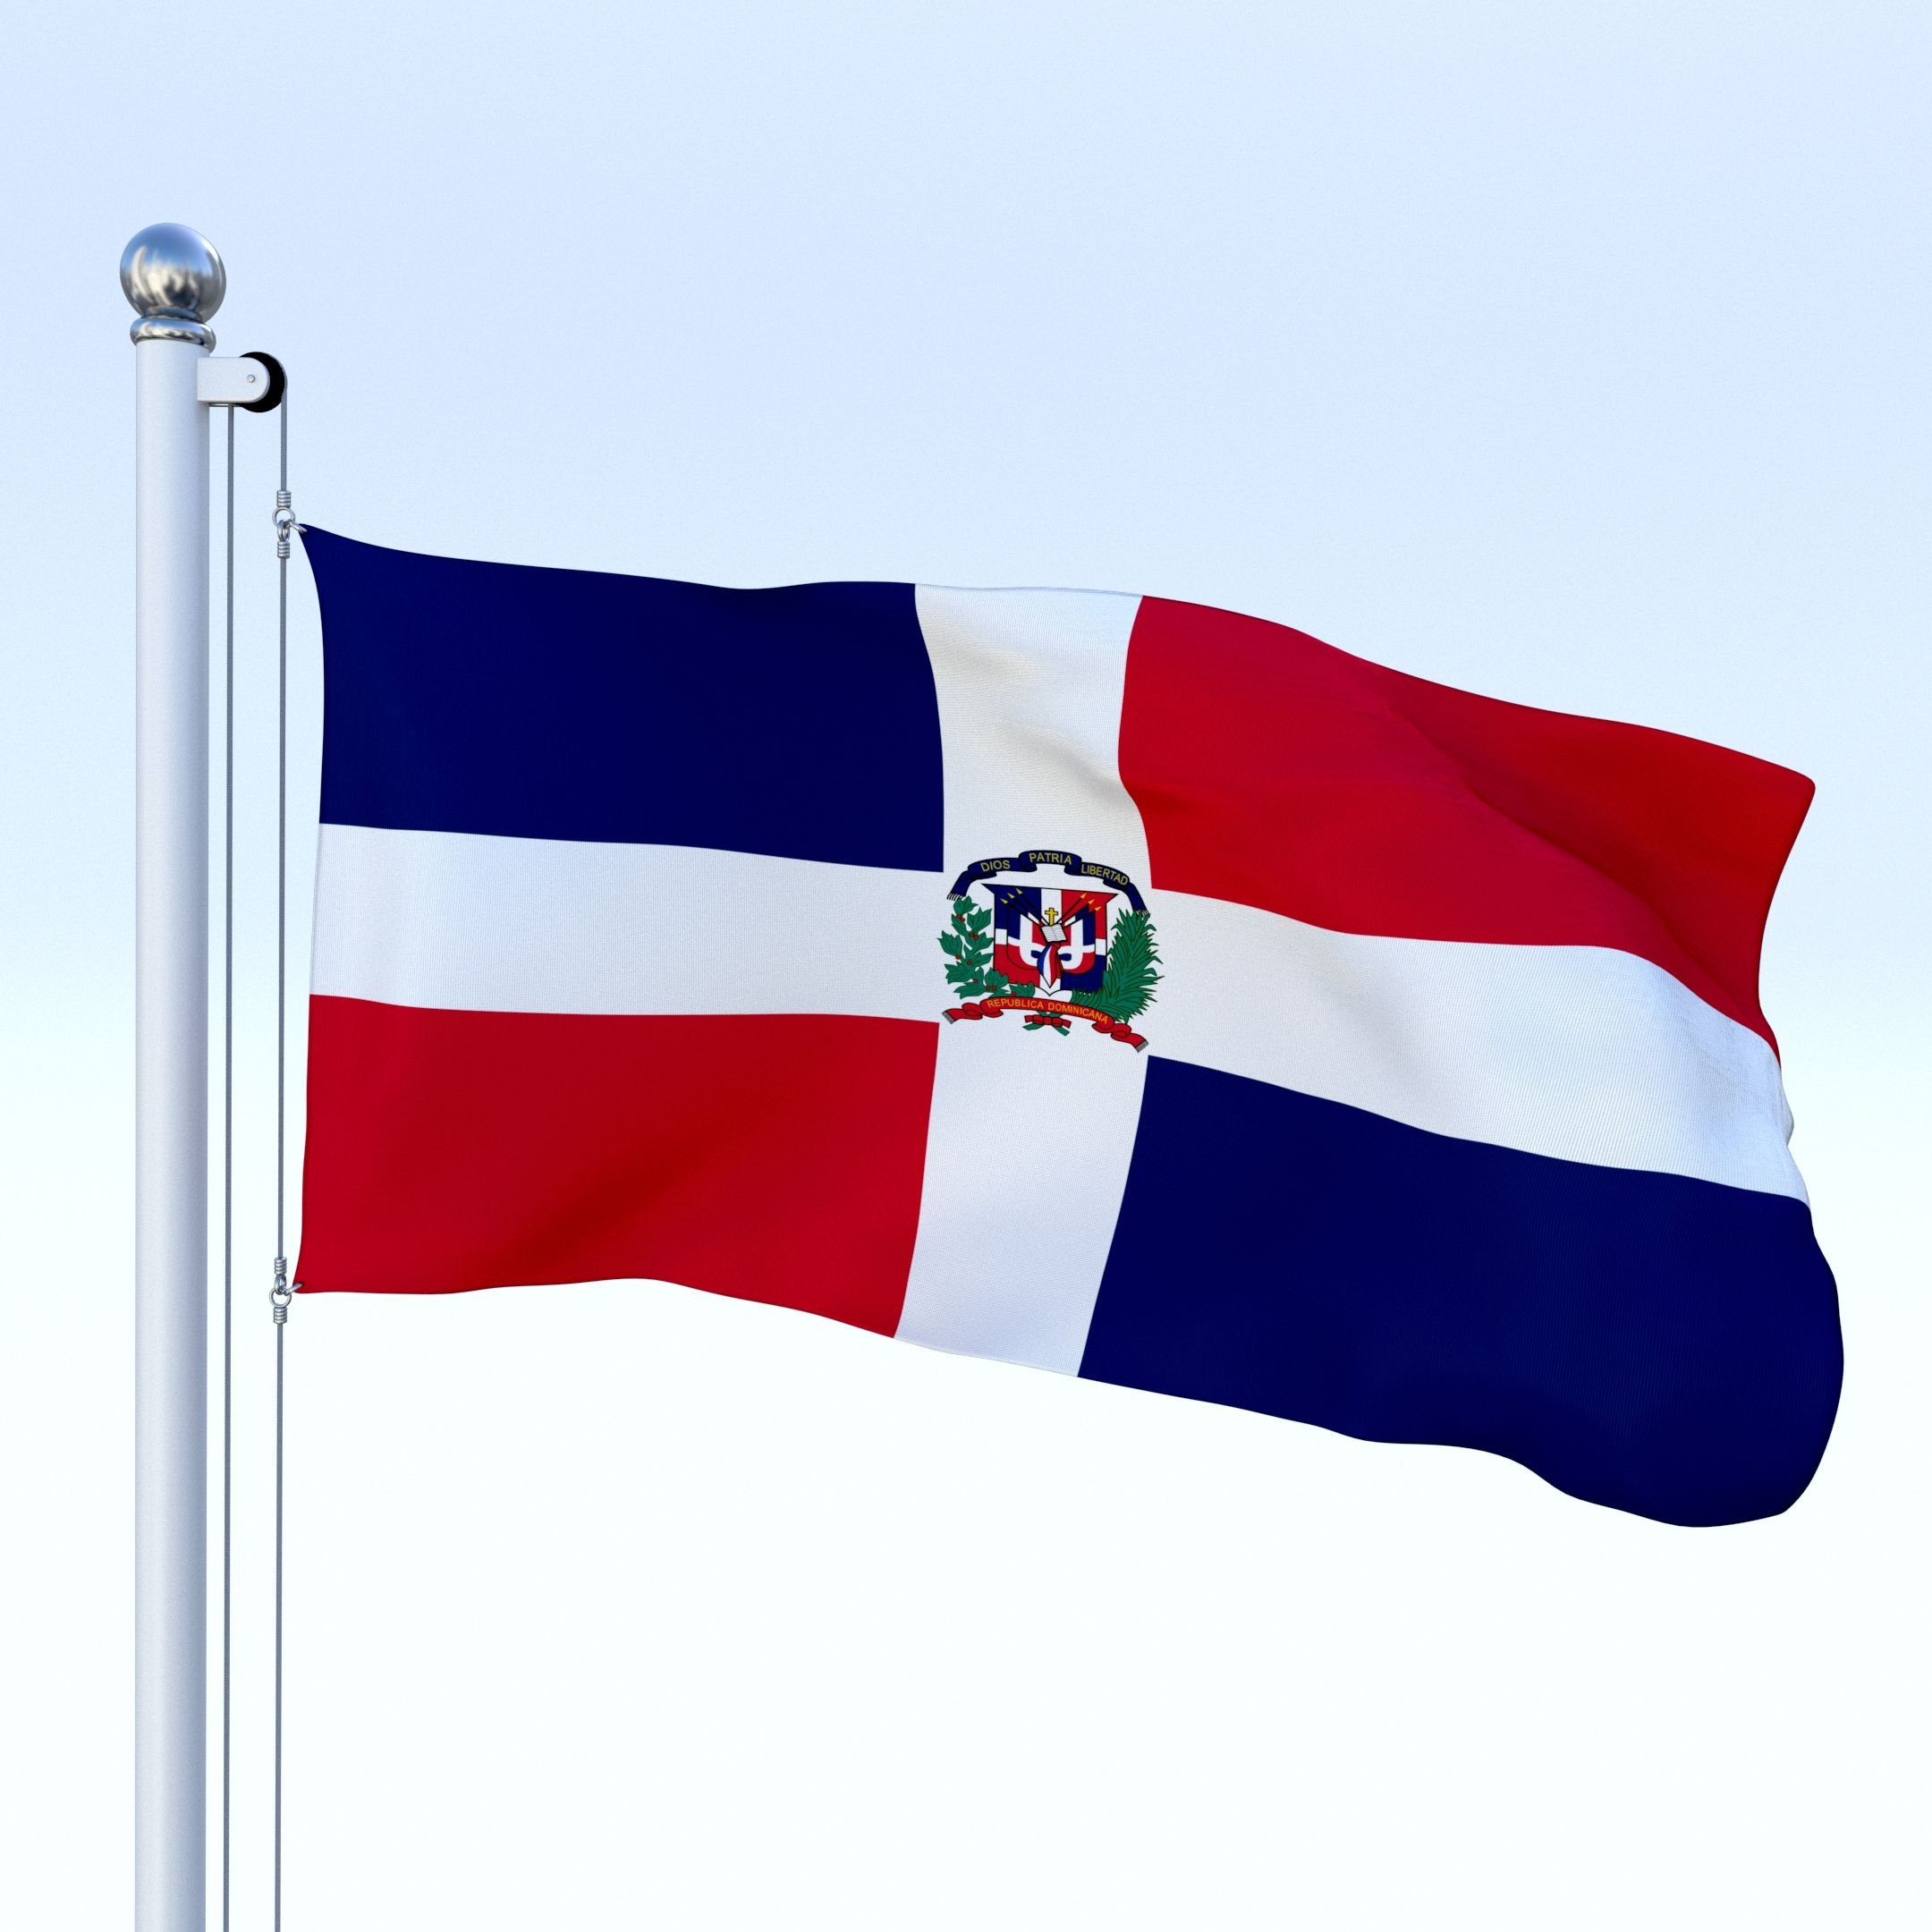 2160x2160 Animated Dominican Republic Flag